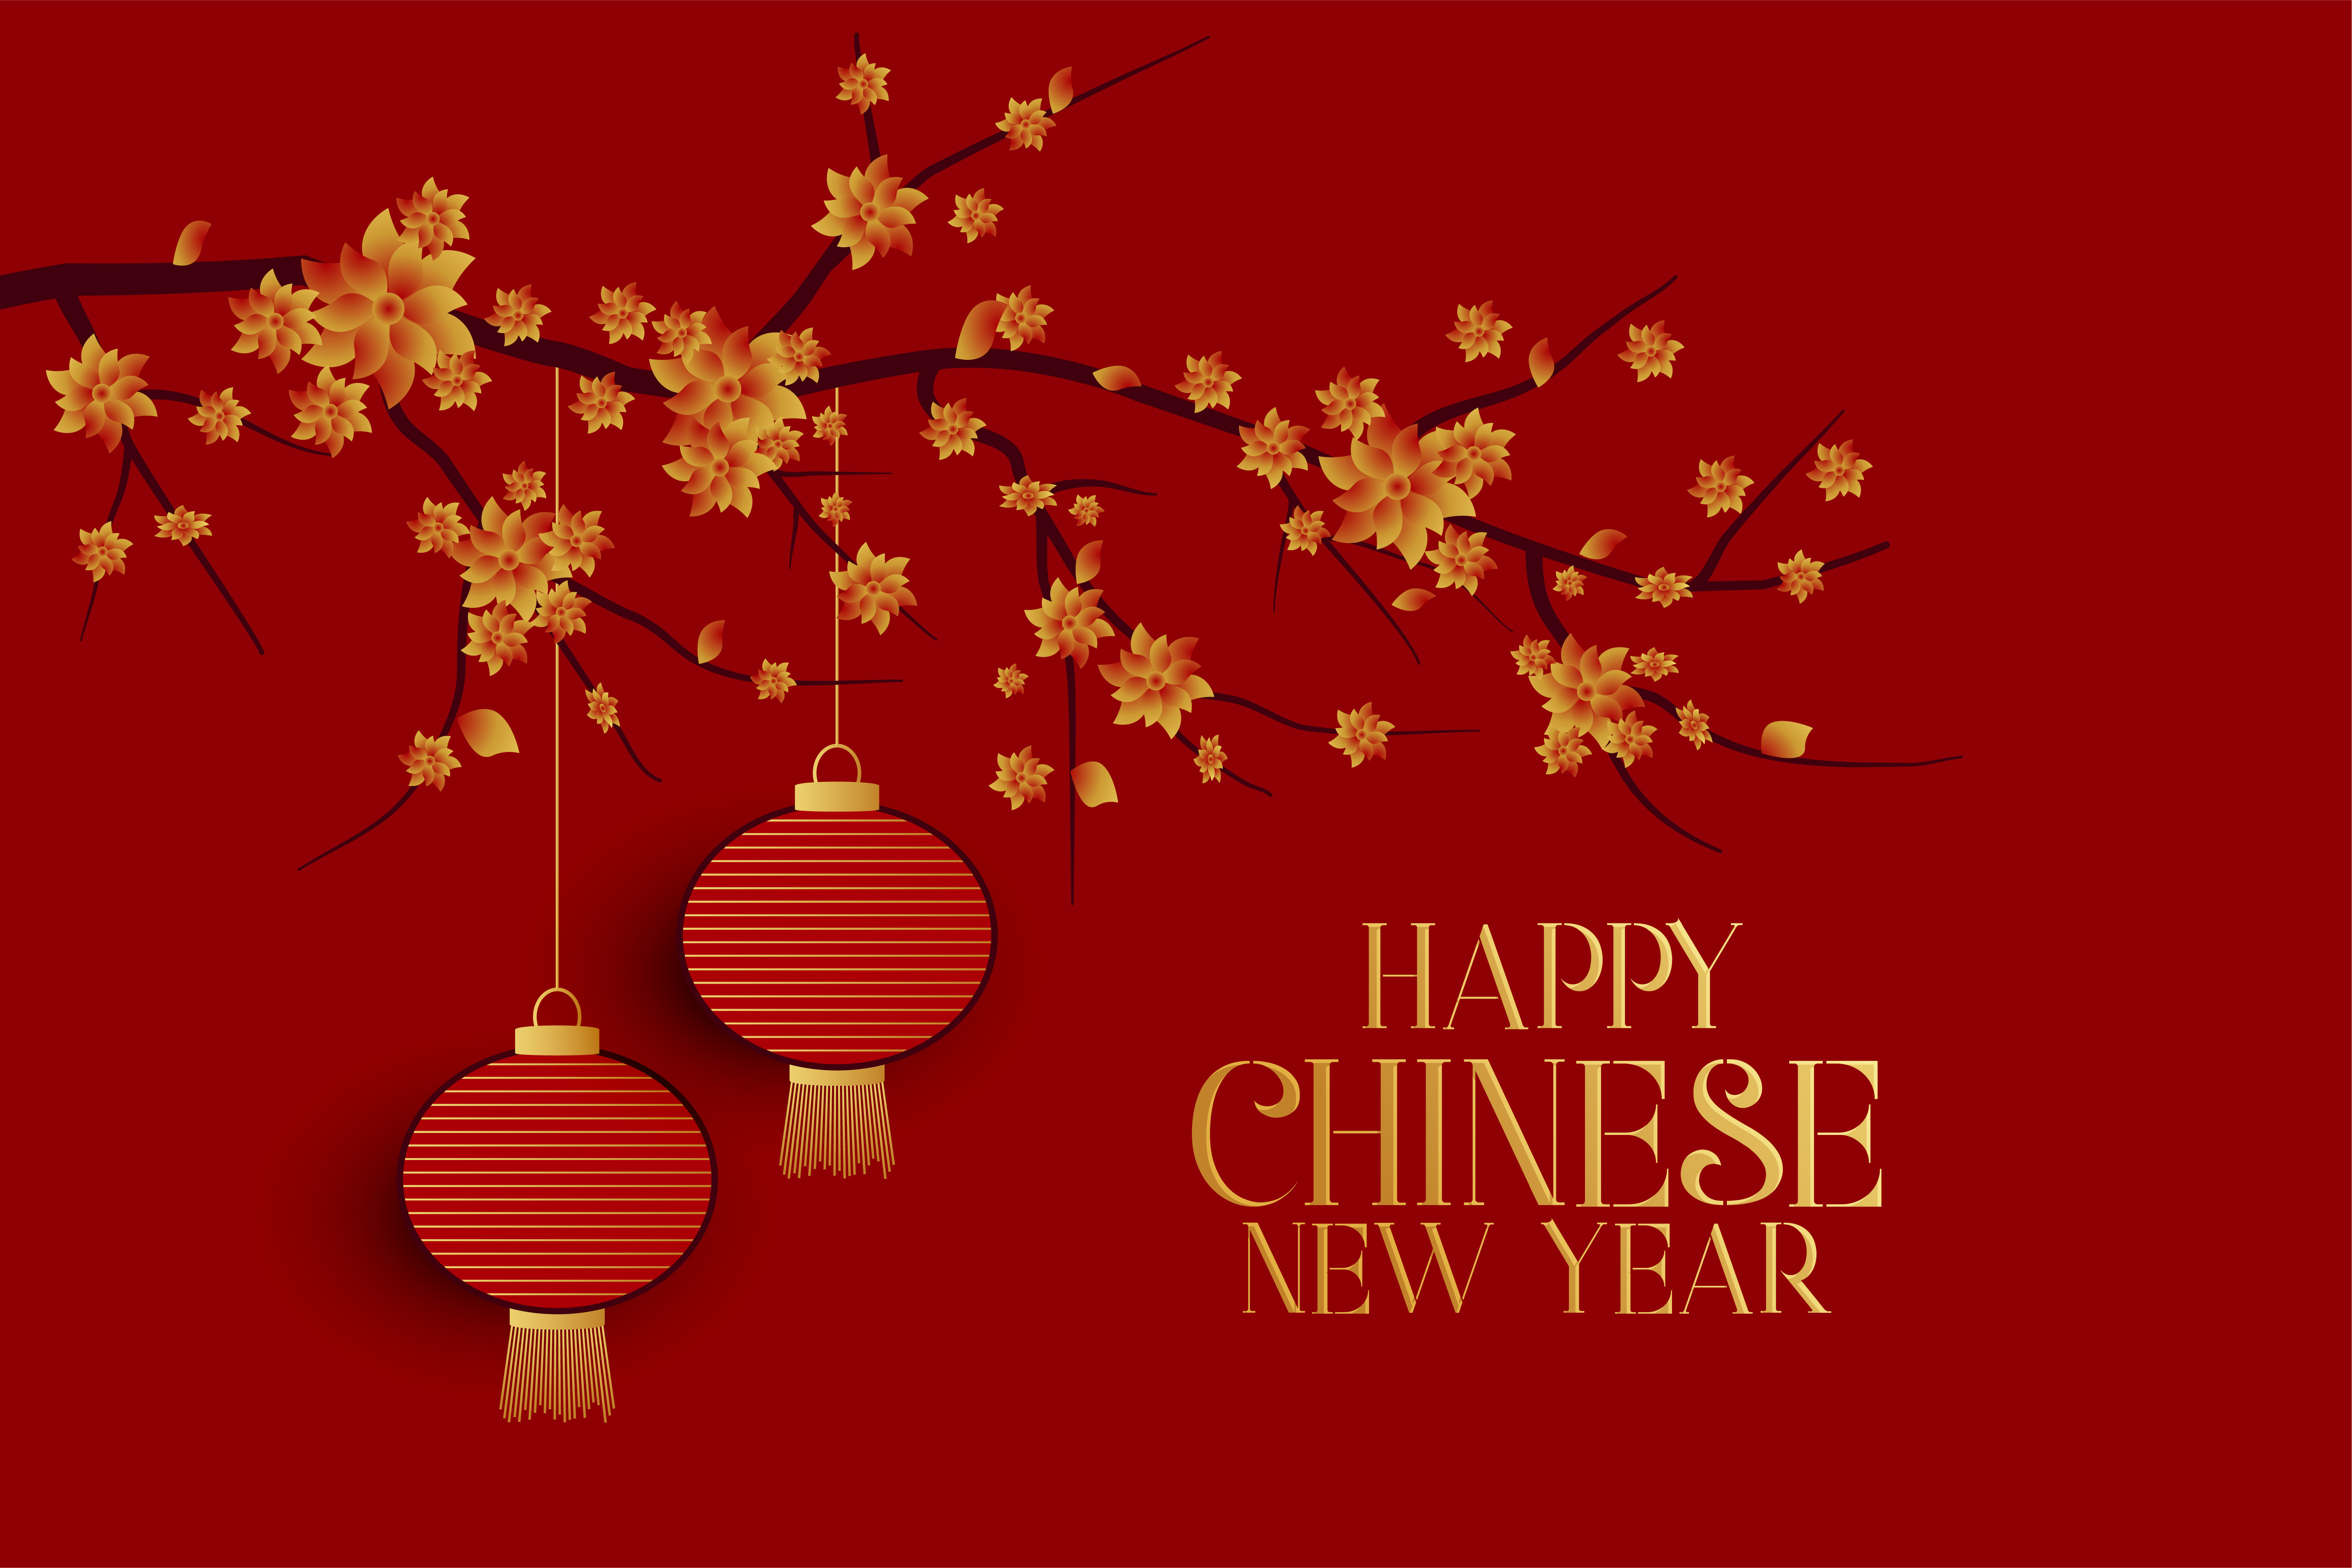 happy chinese new year red background with tree and ...